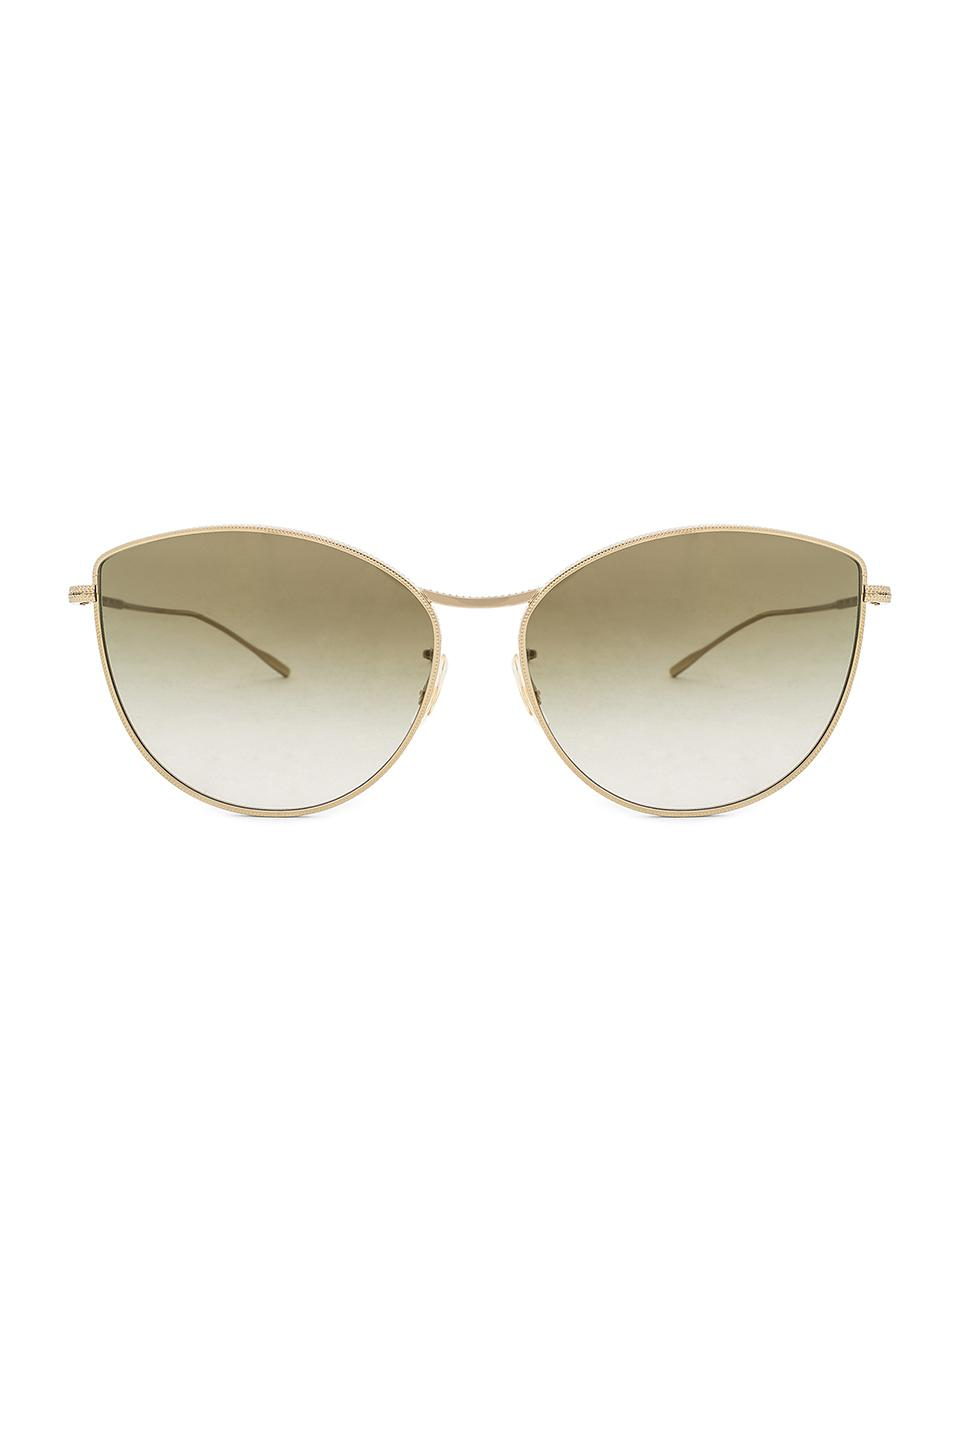 Womens Rayette Special Edition Sunglasses Oliver Peoples iZfSGeidc1